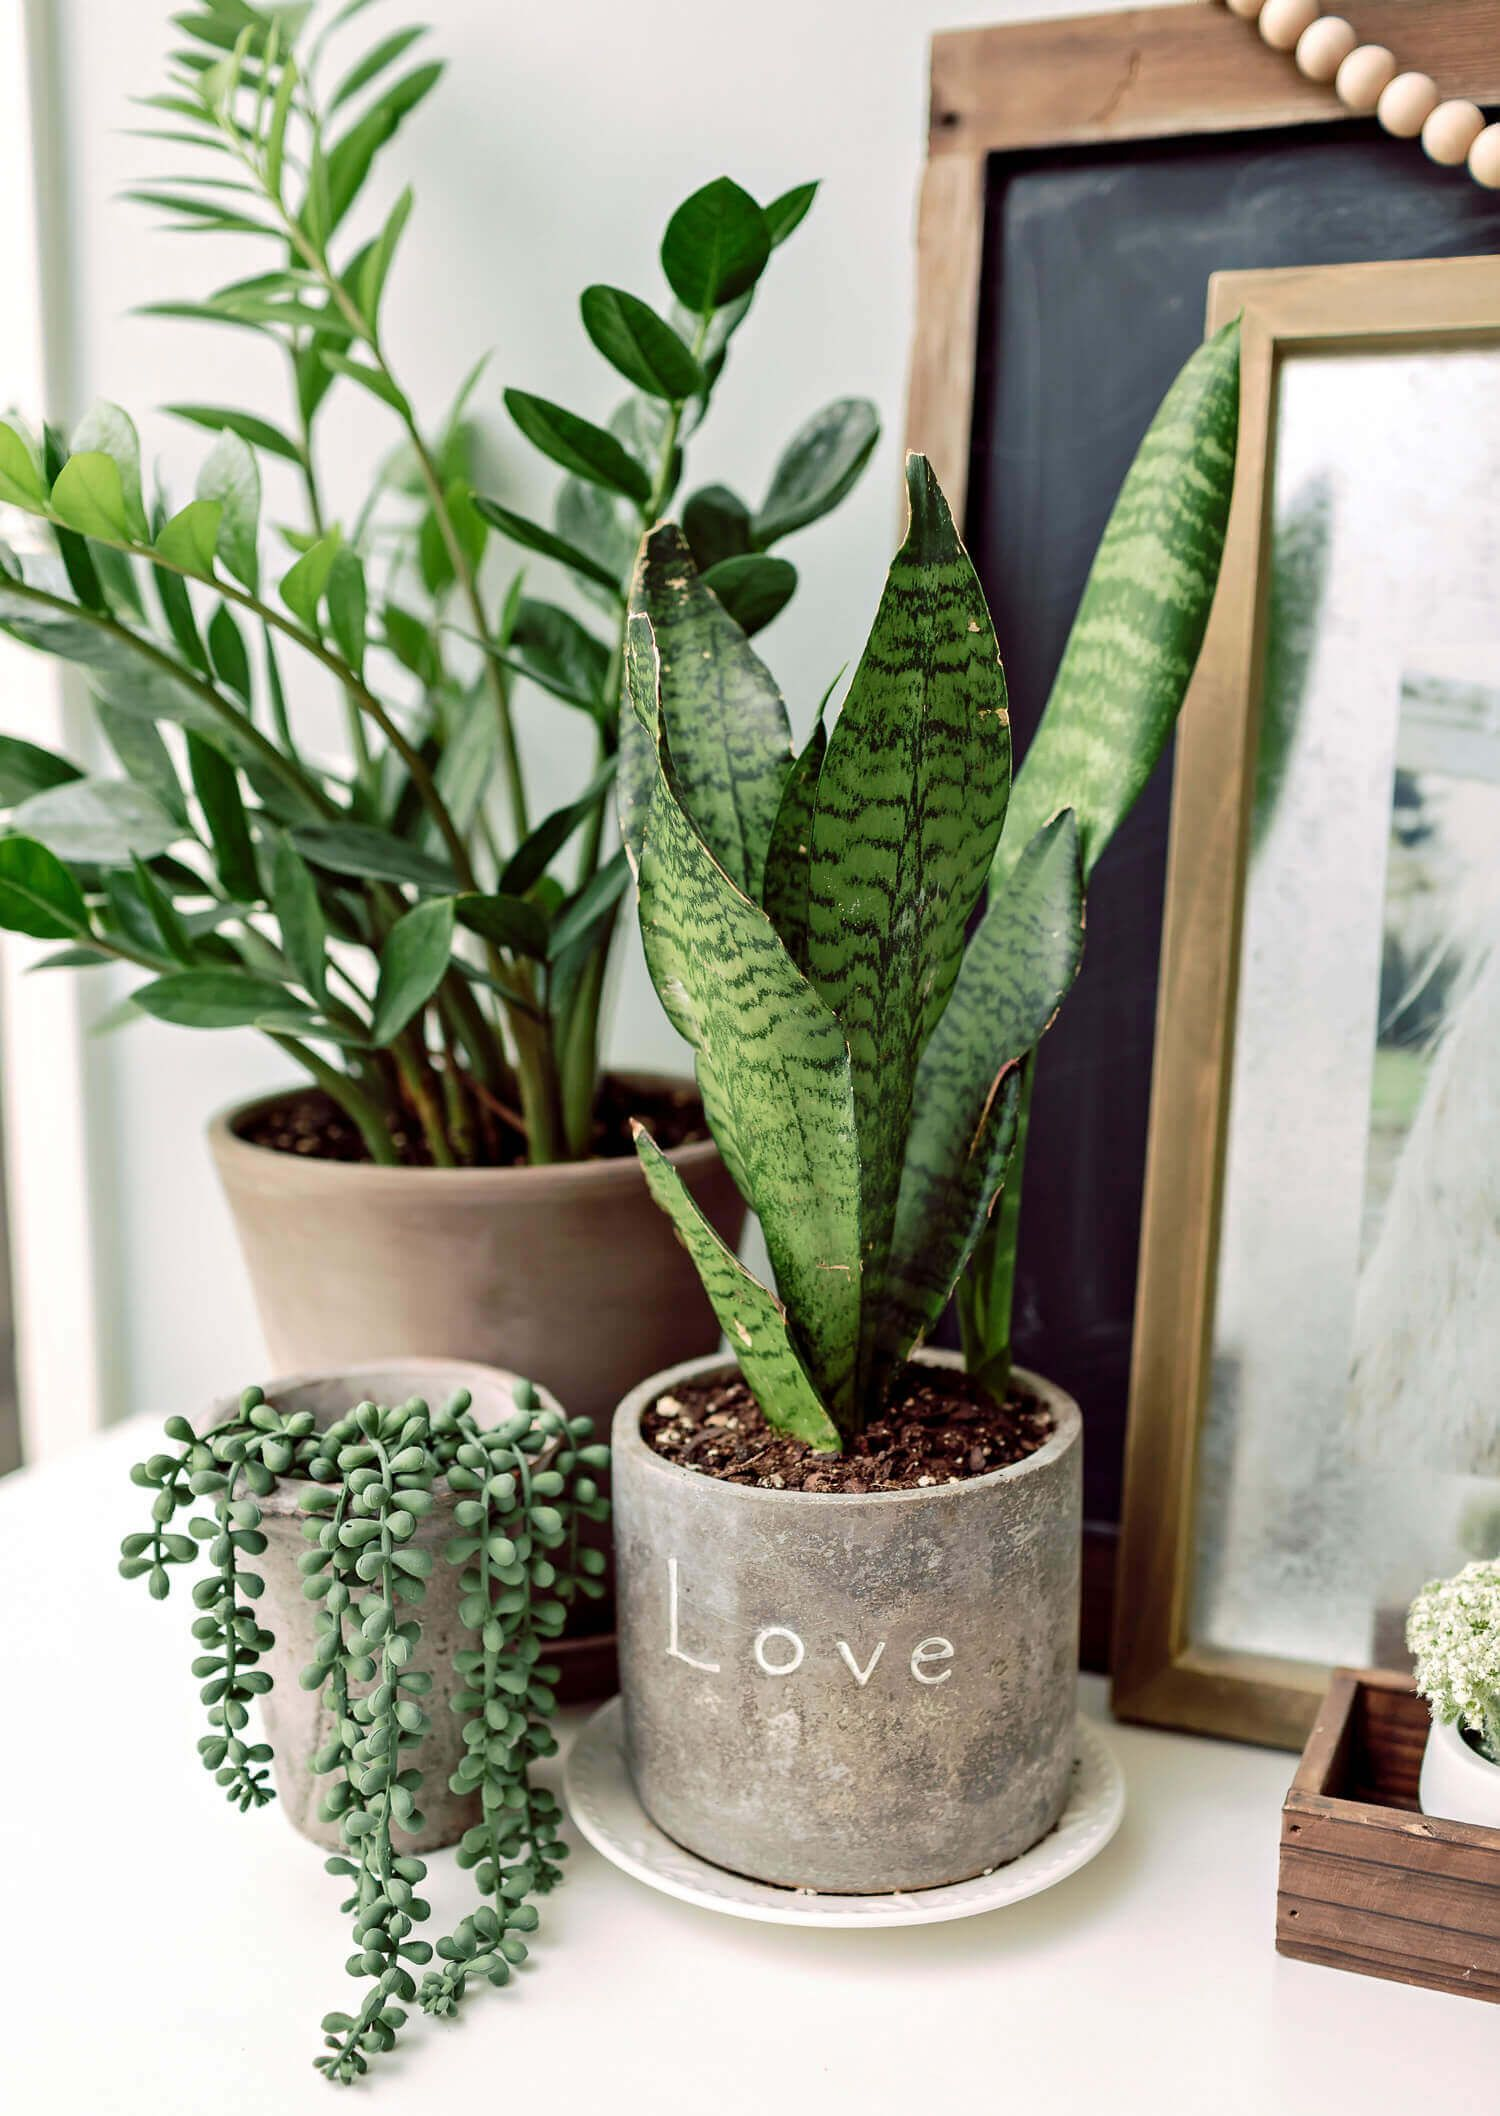 Cacti And Succulents Are Low Maintenance For Instance Whereas There Indoor Plants That Require Much More Attention Care So Do Pay To